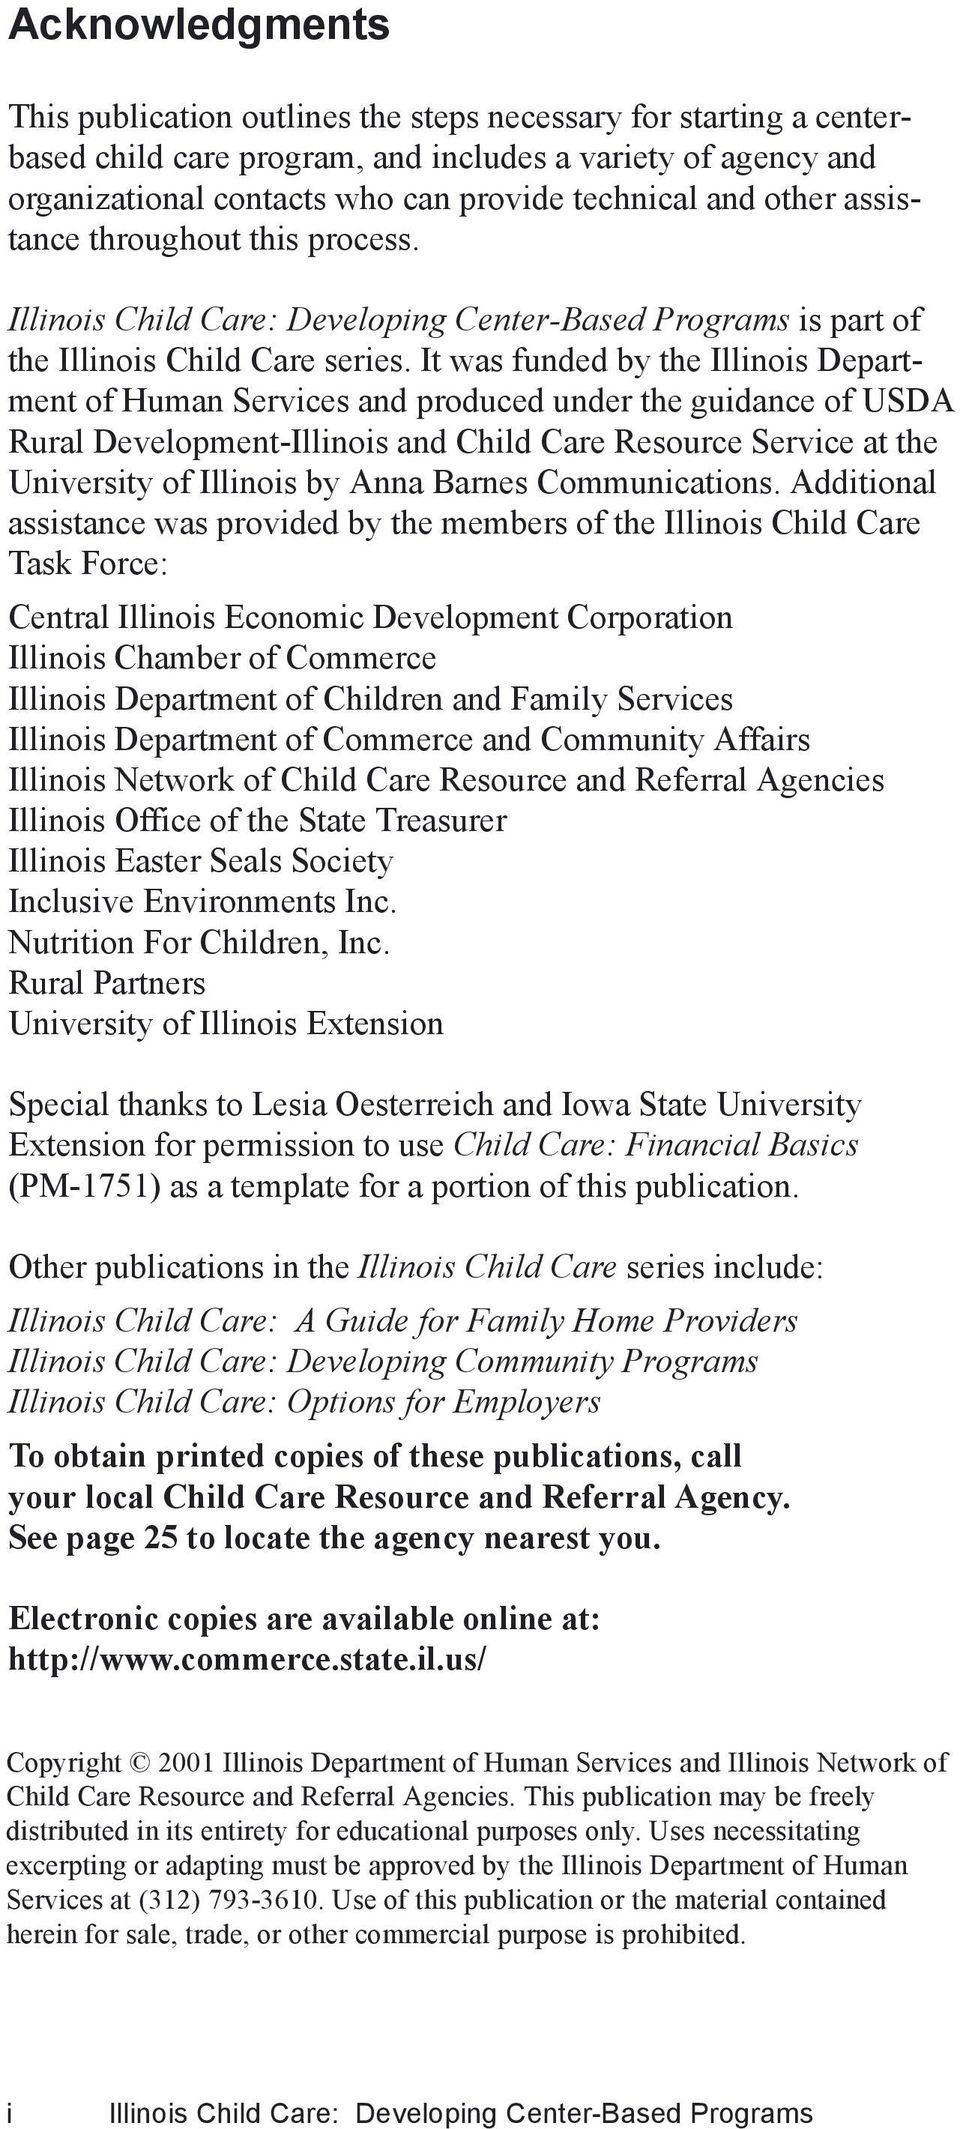 It was funded by the Illinois Department of Human Services and produced under the guidance of USDA Rural Development-Illinois and Child Care Resource Service at the University of Illinois by Anna